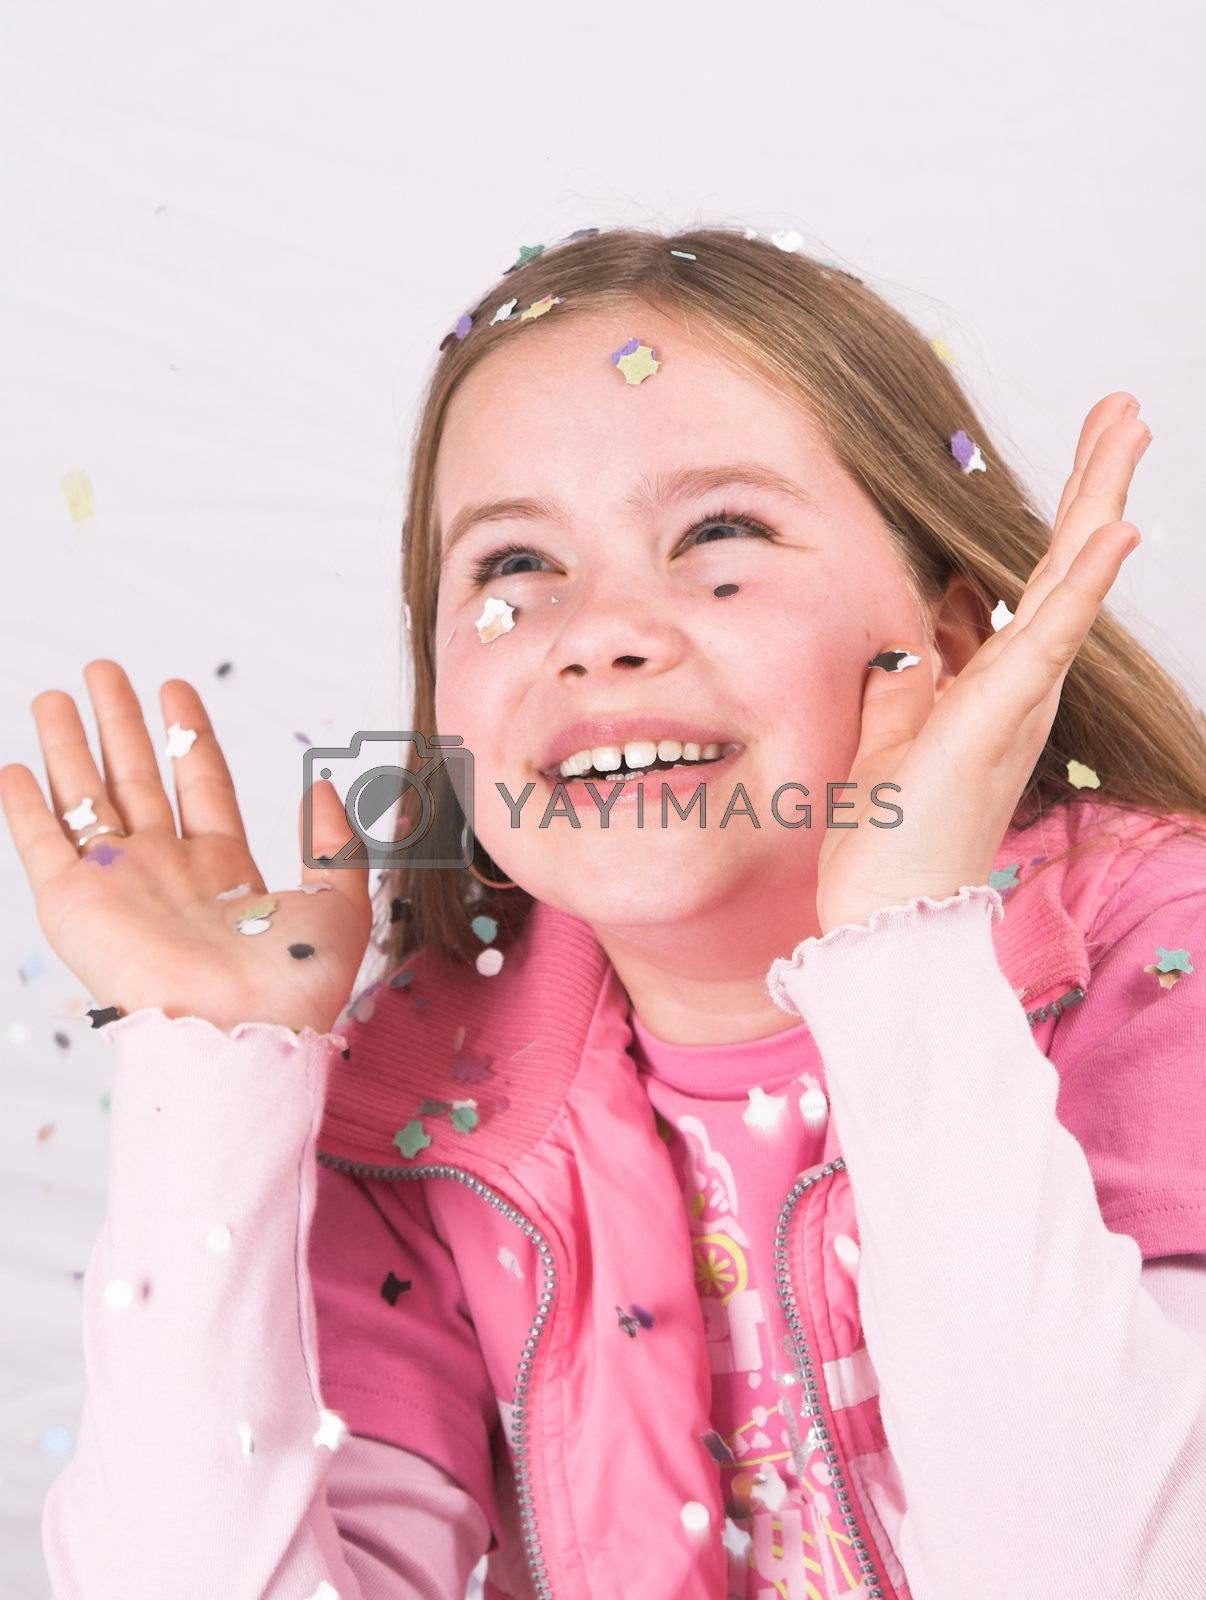 Pretty ten year old girl holding her hands up to catch the confetti coming down